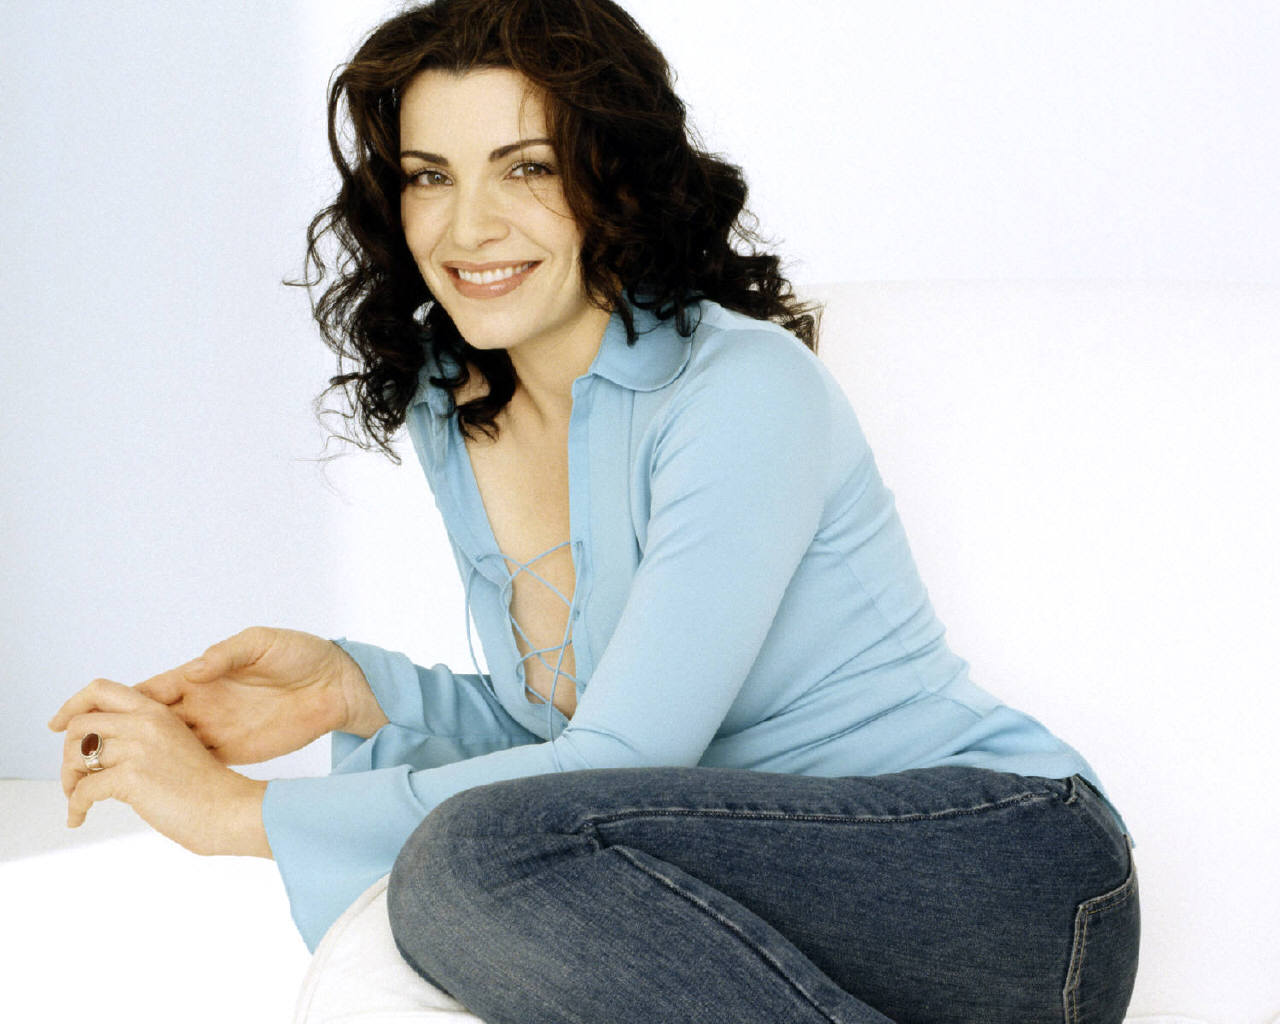 http://images1.fanpop.com/images/image_uploads/Julianna-julianna-margulies-1002350_1280_1024.jpg